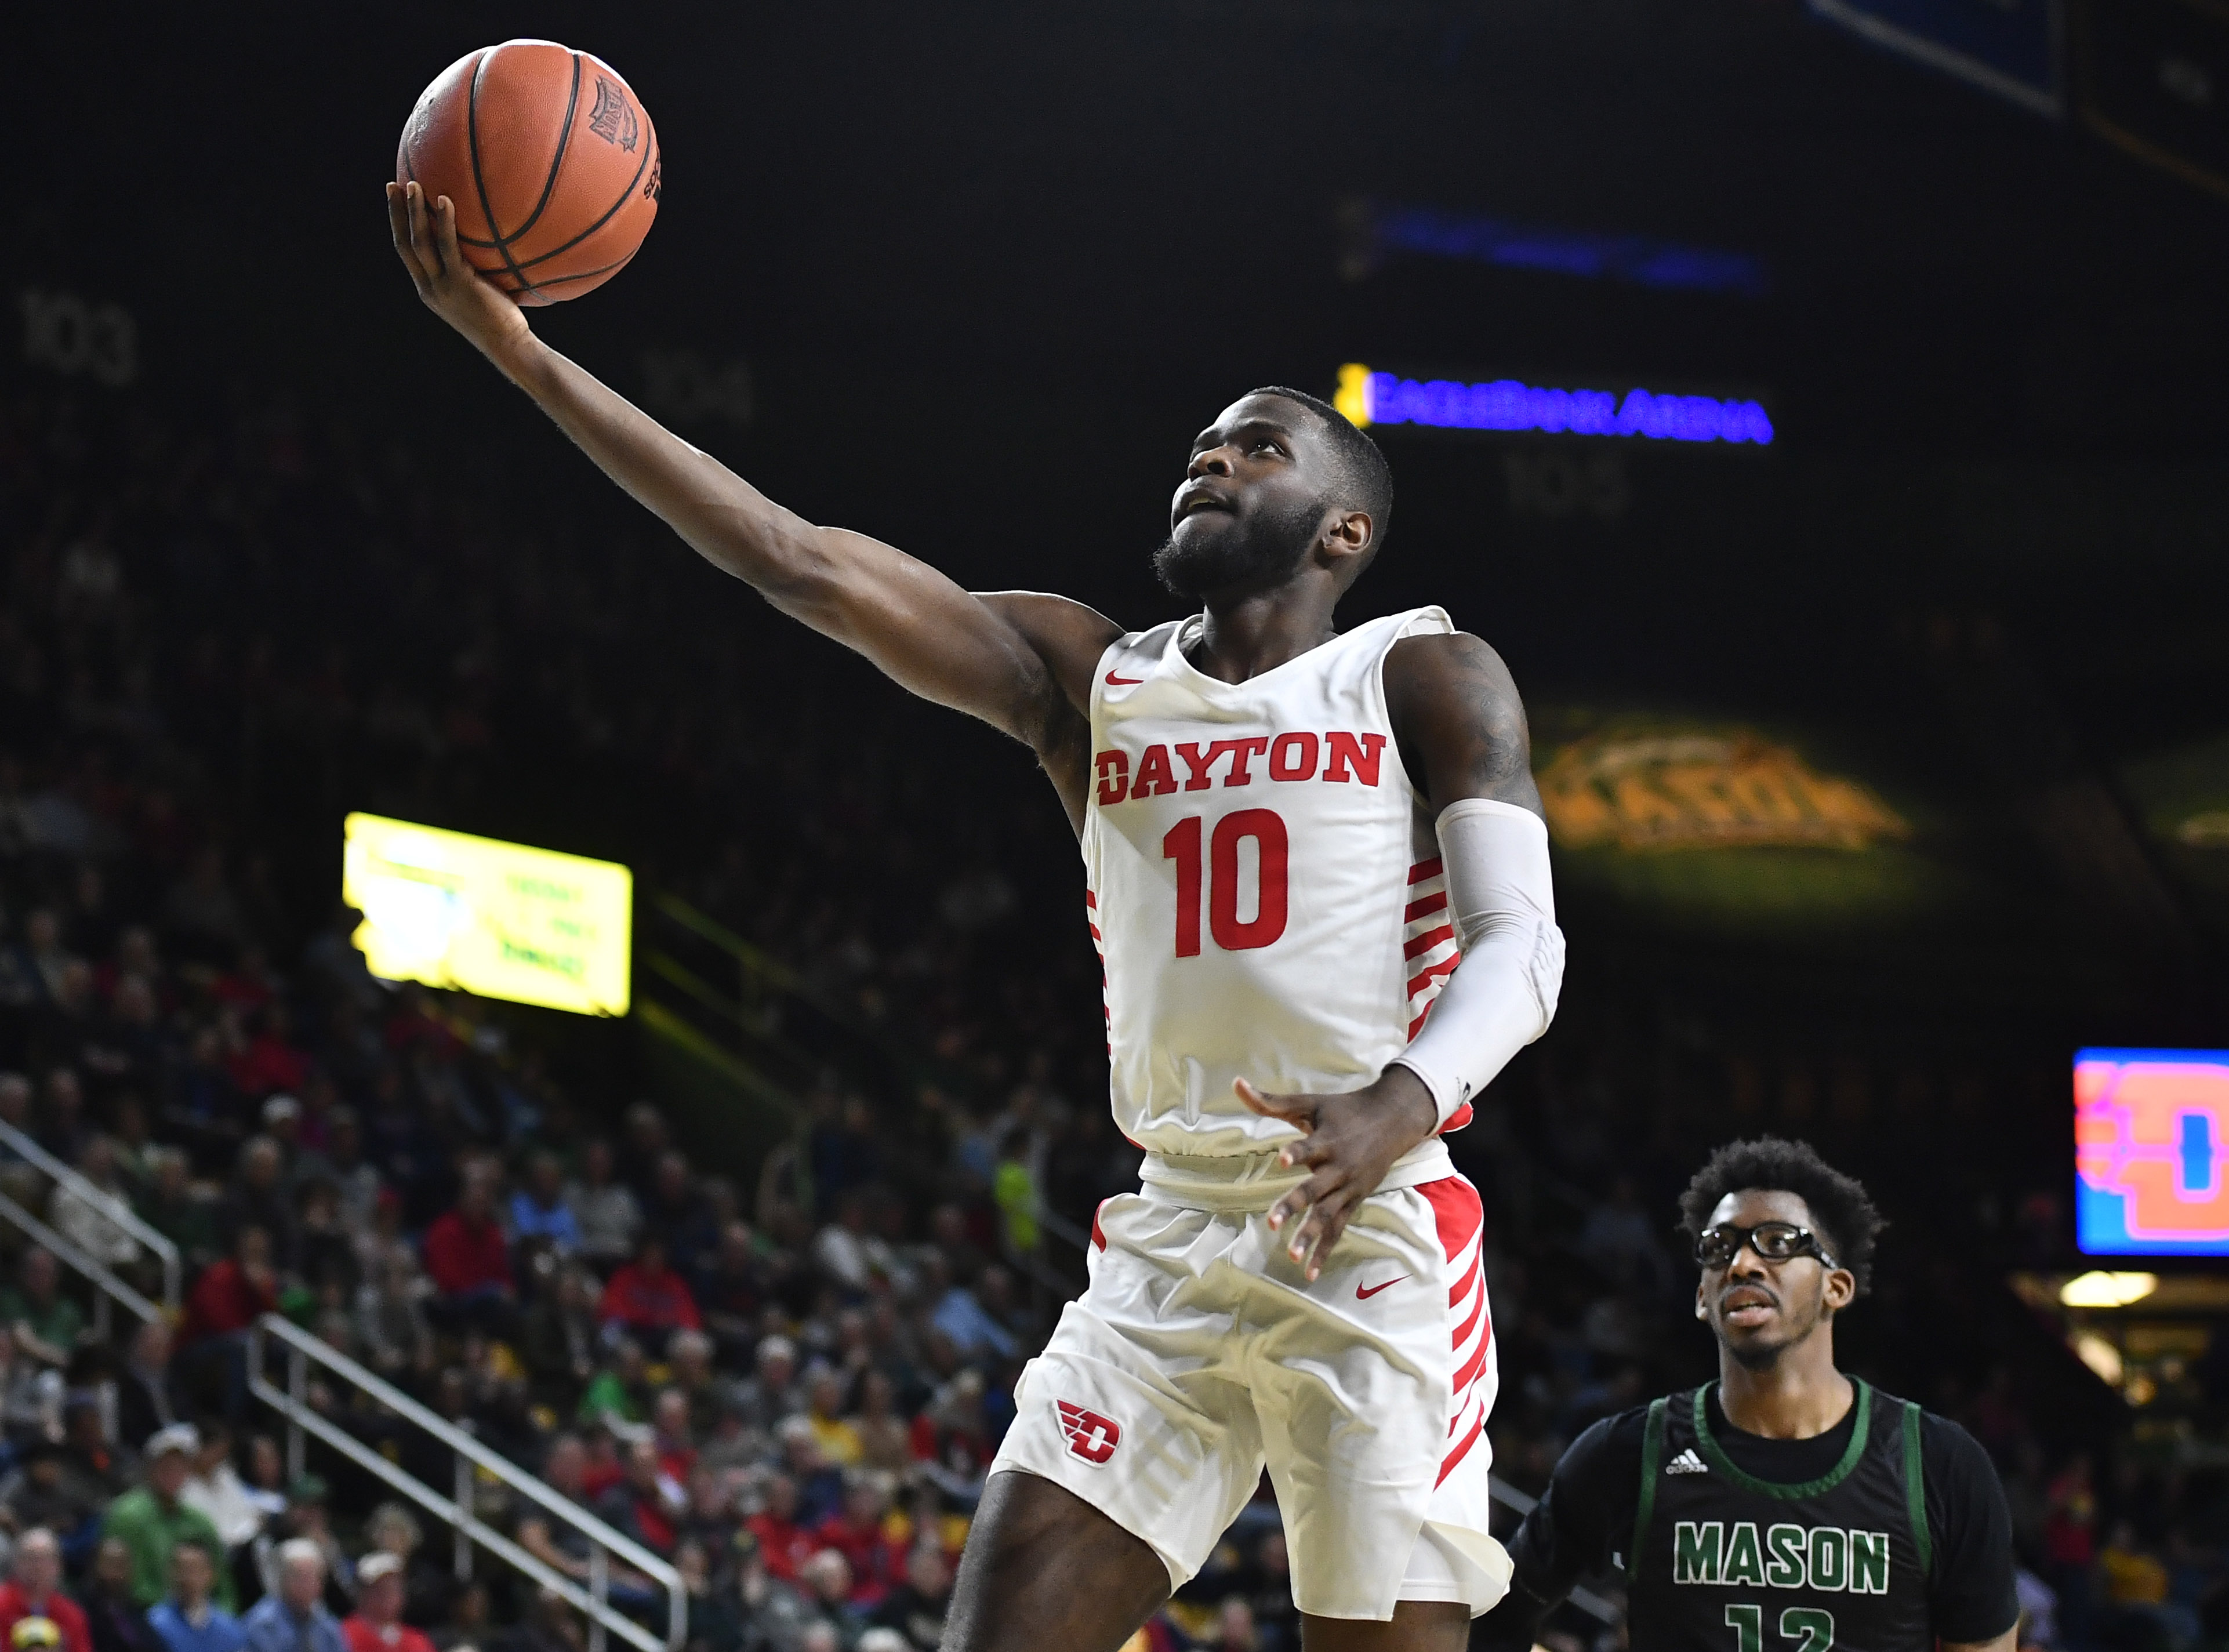 Feb 25, 2020; Fairfax, Virginia, USA; Dayton Flyers guard Jalen Crutcher (10) shoots as George Mason Patriots forward AJ Wilson (12) looks on during the first half at EagleBank Arena.